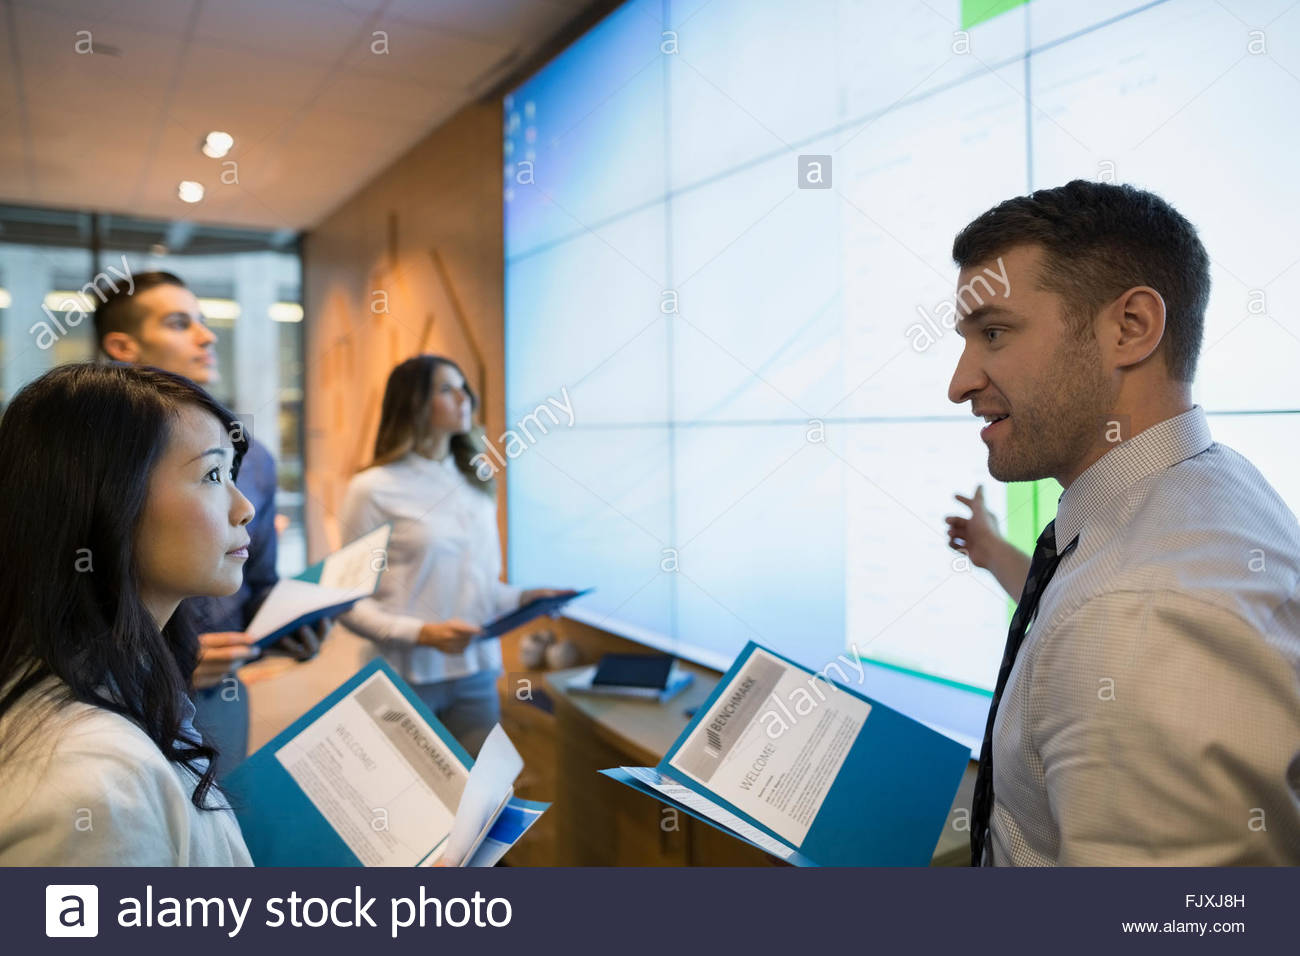 Business people meeting at projection screen conference room - Stock Image